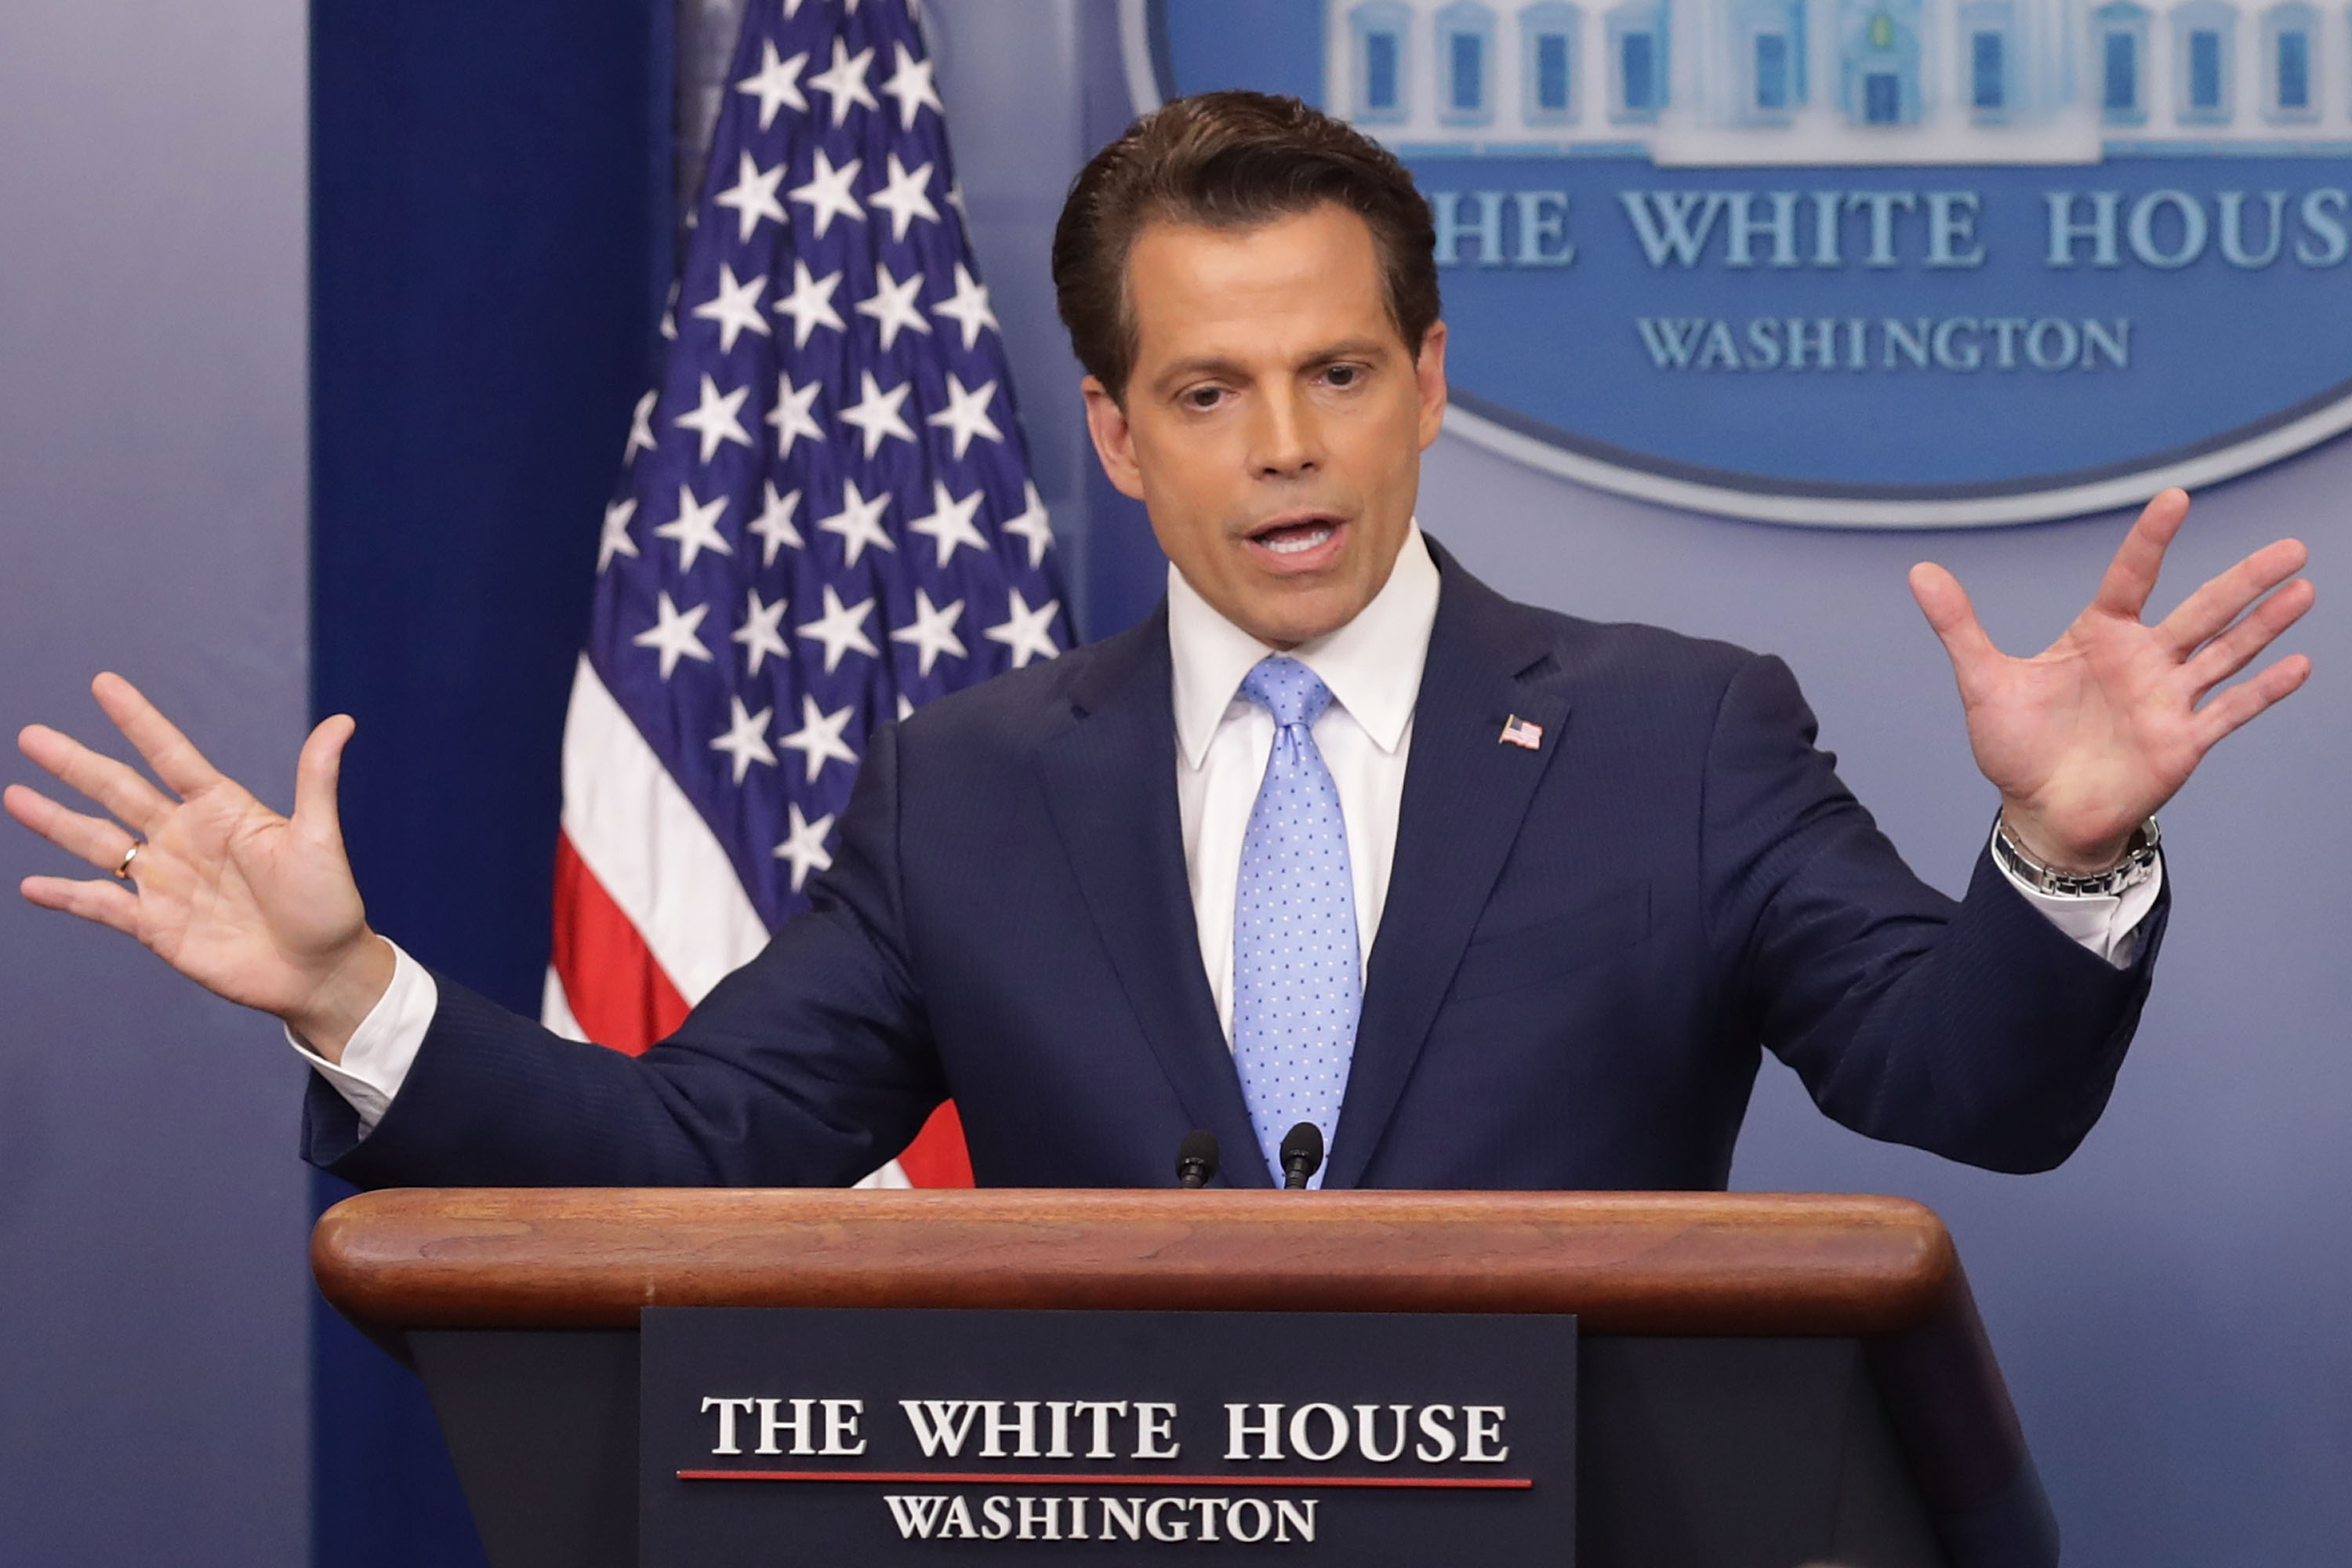 WASHINGTON, DC - JULY 21: Anthony Scaramucci answers reporters' questions during the daily White House press briefing in the Brady Press Briefing Room at the White House July 21, 2017 in Washington, DC. White House Press Secretary Sean Spicer quit after it was announced that Trump hired Scaramucci, a Wall Street financier and longtime supporter, to the position of White House communications director. (Photo by Chip Somodevilla/Getty Images)